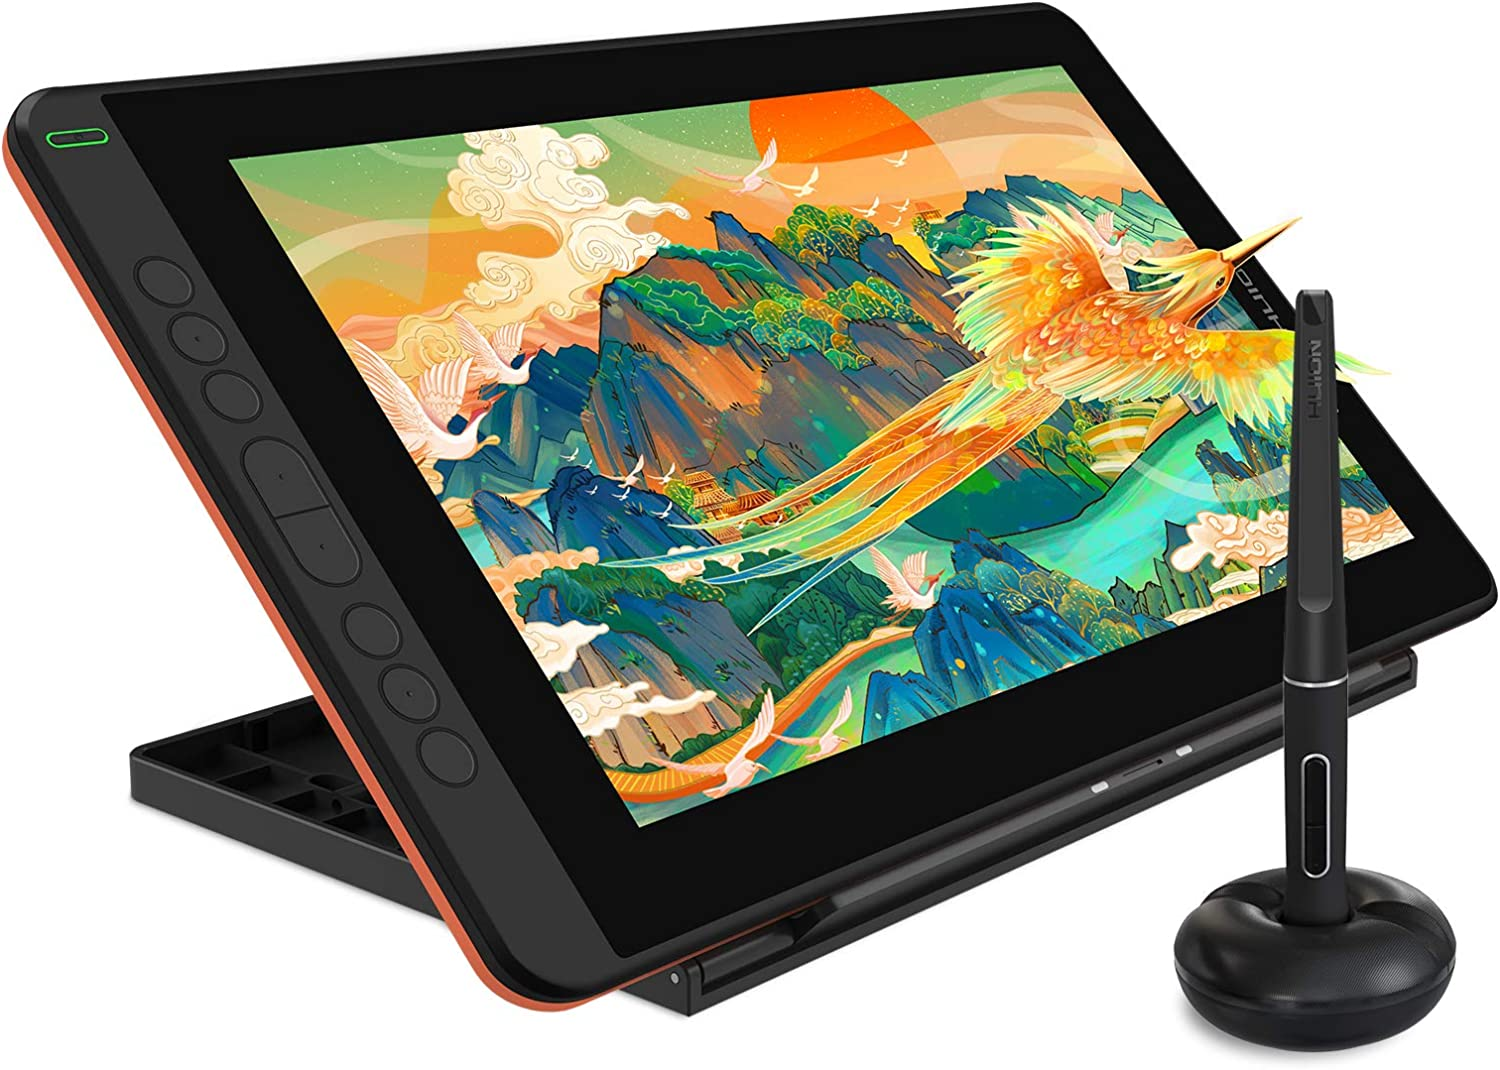 2021 HUION KAMVAS 12 Graphics Drawing Tablet with Screen Full Lamination Android Support Battery-Free Sylus Tilt 8 Press Keys Adjustable Stand